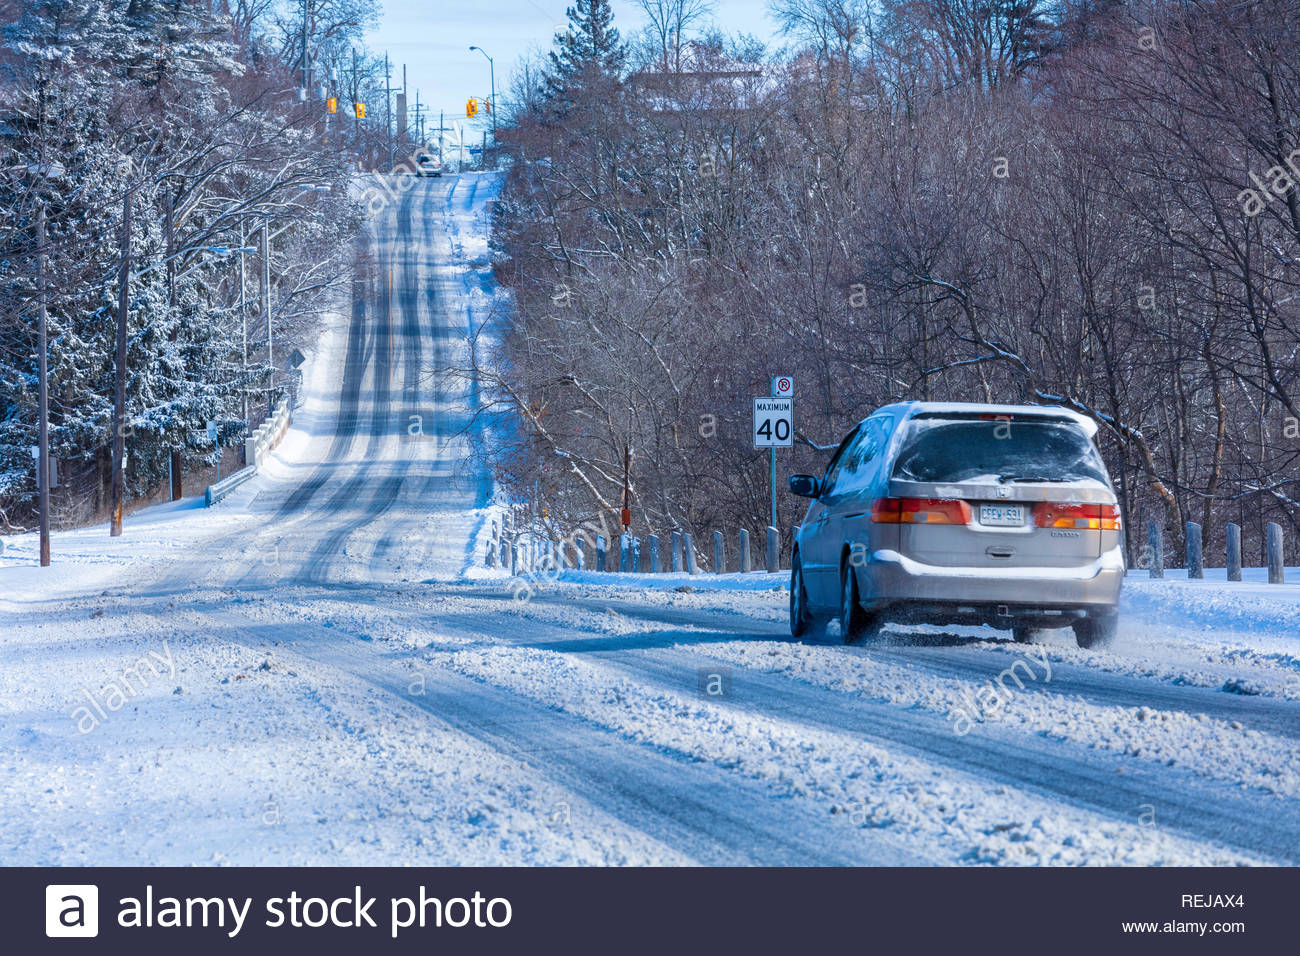 Bad winter driving conditions on a snow covered road in Toronto Ontario Canada - Stock Image